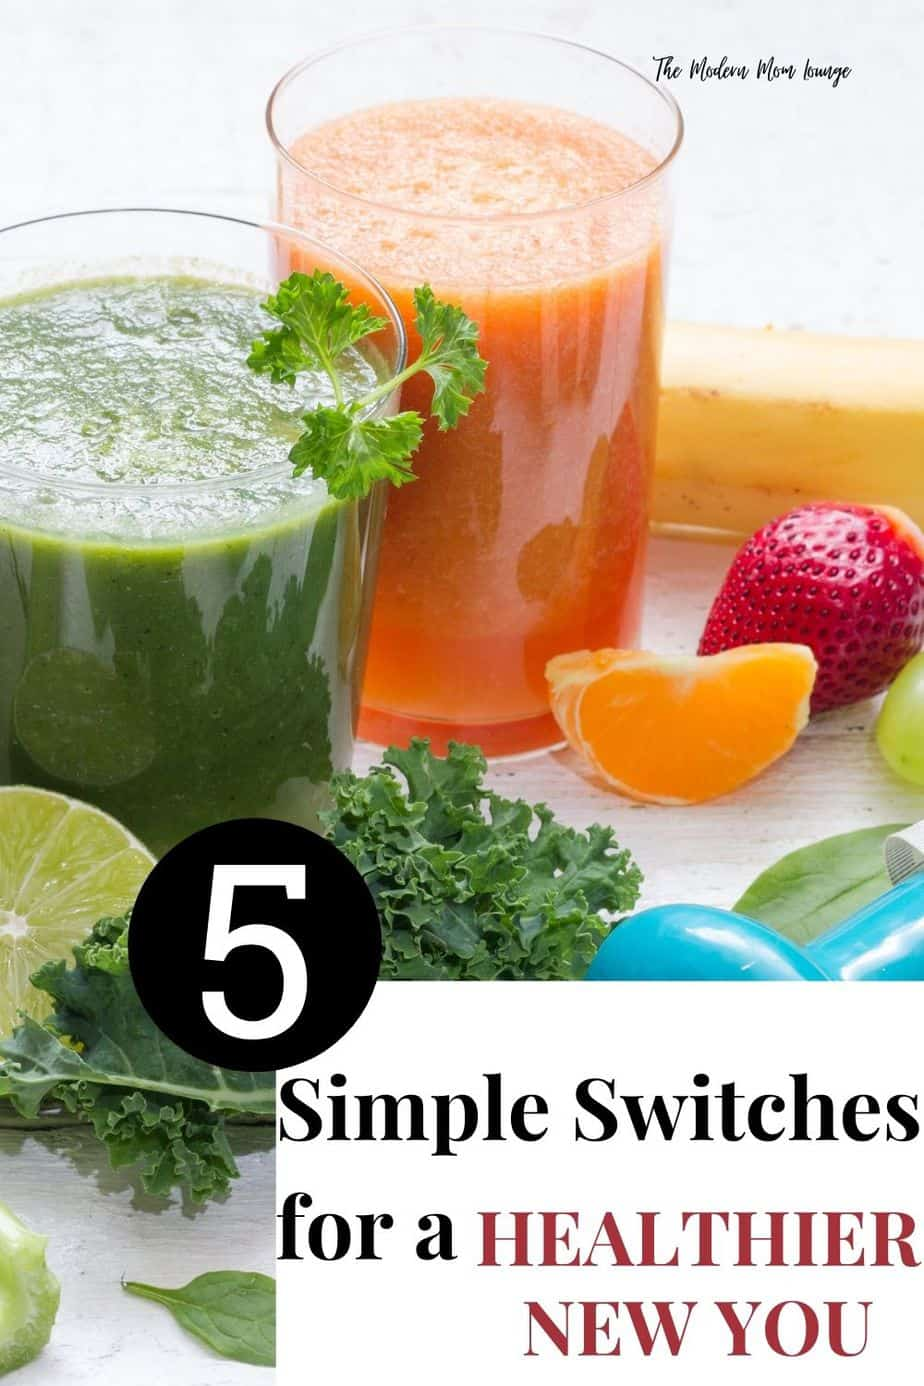 simple switches for a healthier you